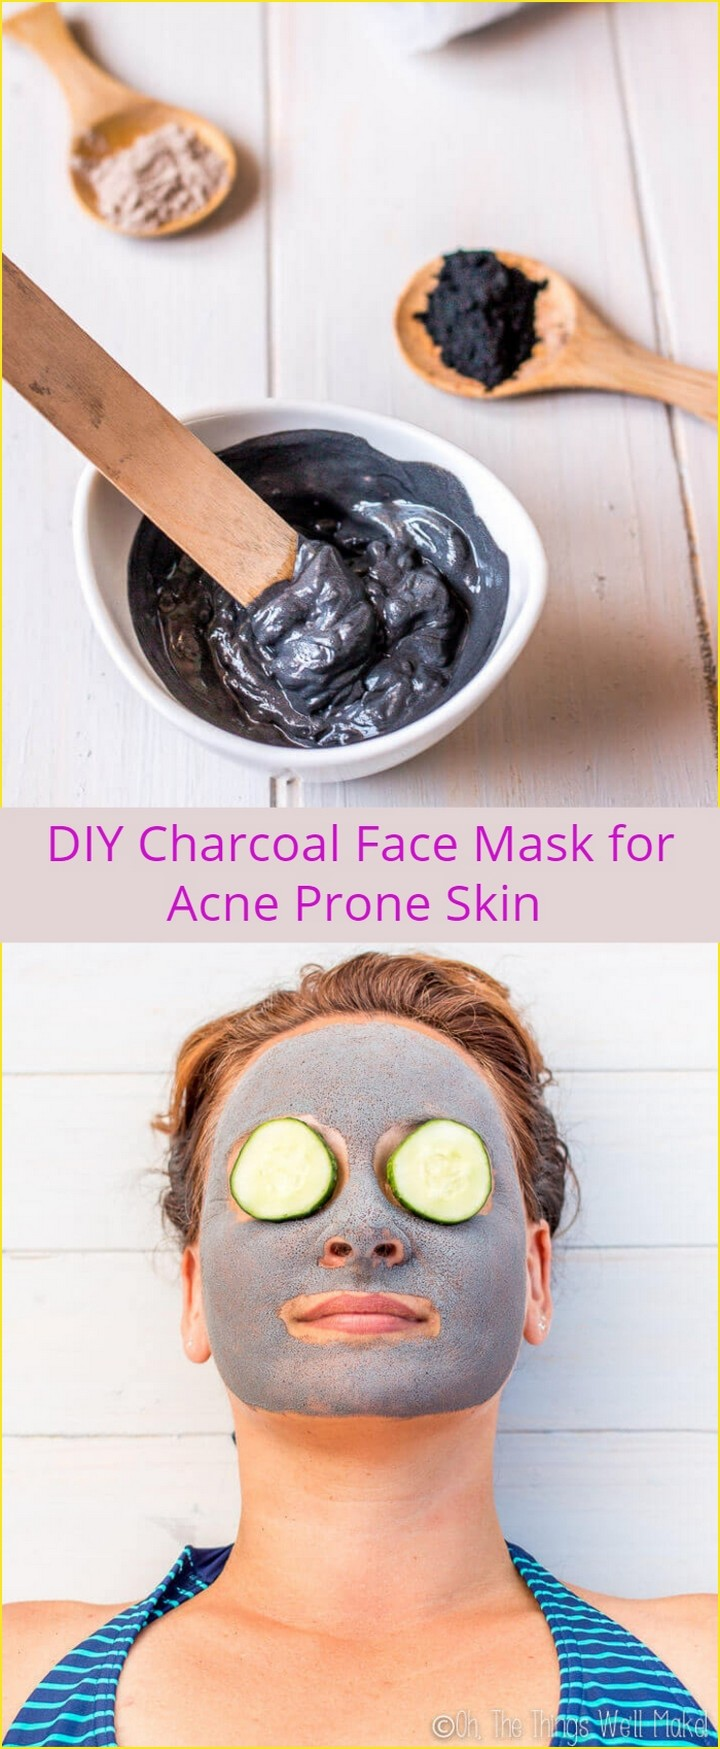 DIY Charcoal Face Mask for Acne Prone Skin 1